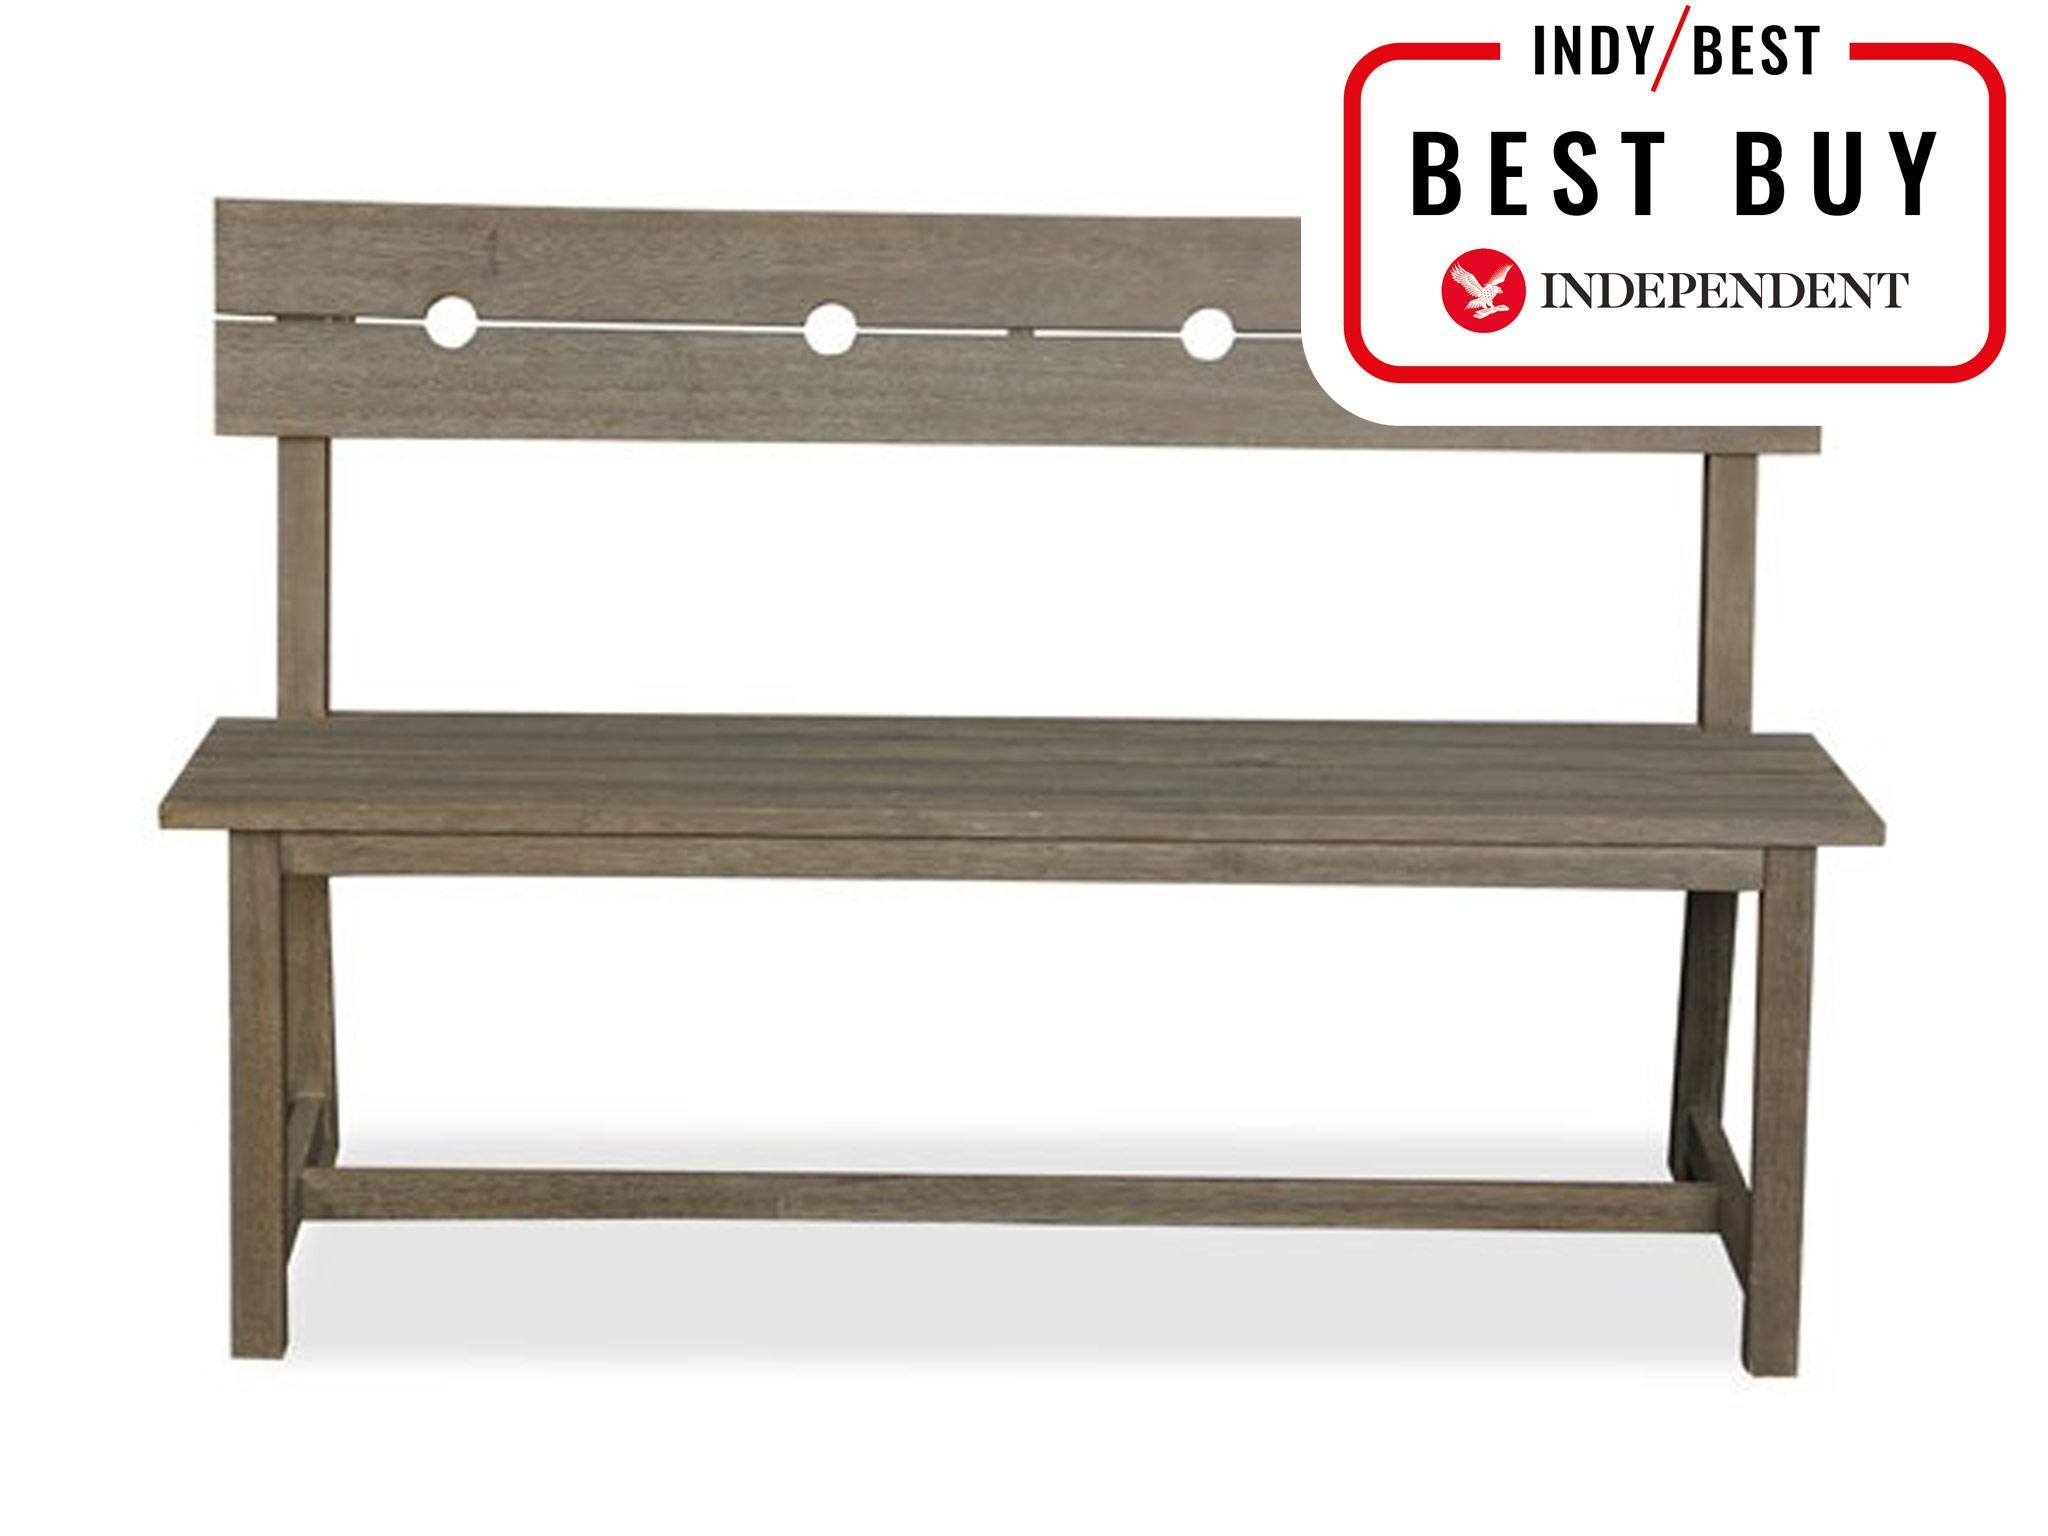 Brilliant 10 Best Garden Benches The Independent Machost Co Dining Chair Design Ideas Machostcouk